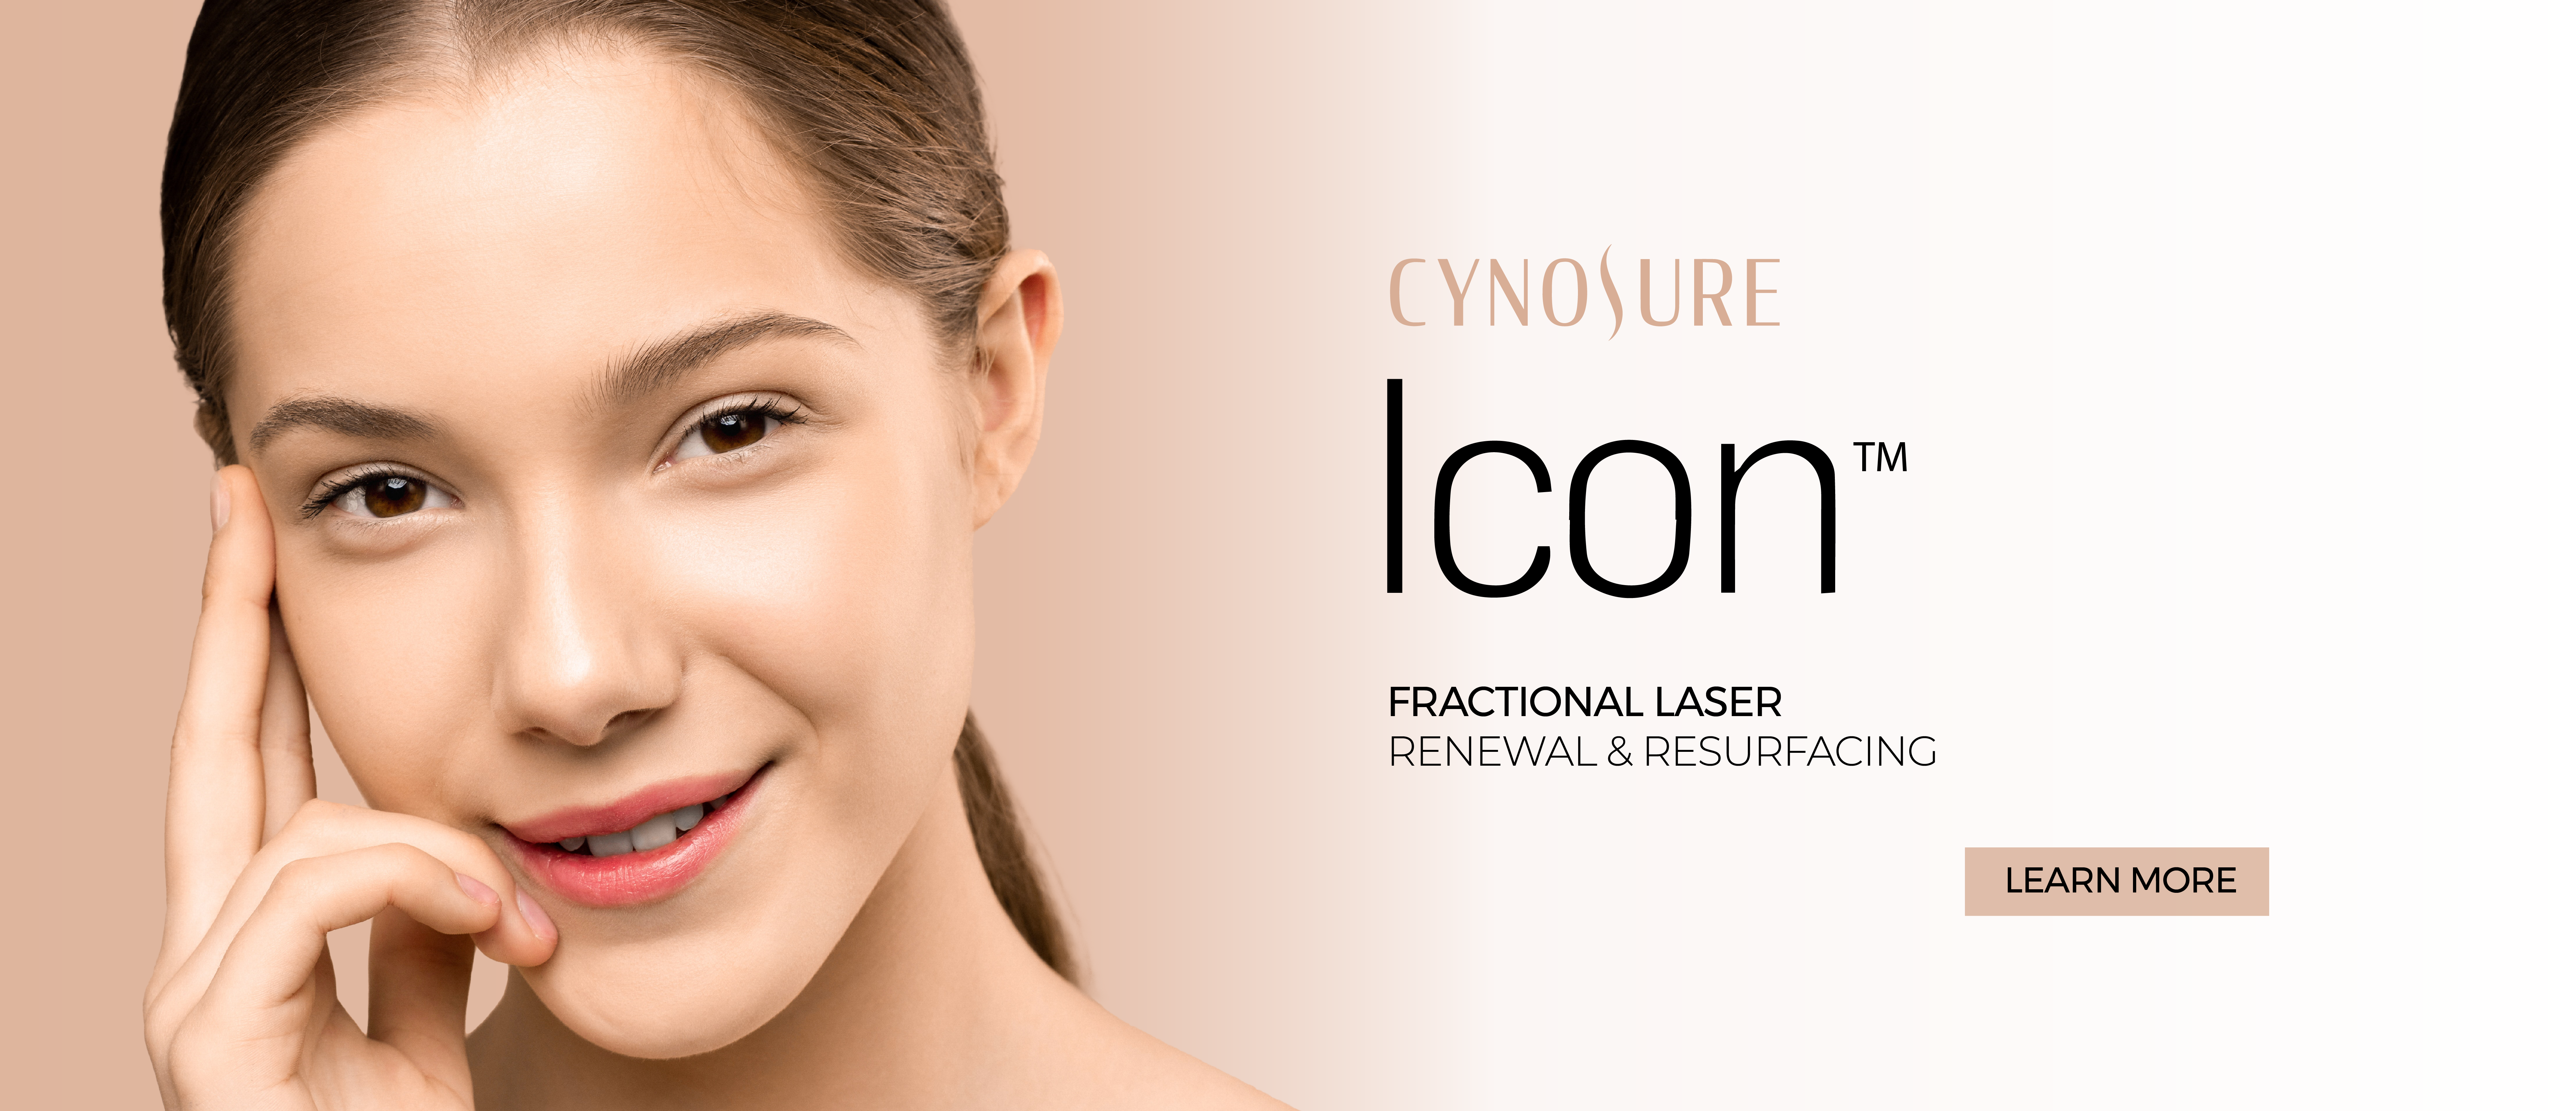 Fractional Laser Renewal & Resurfacing Treatment with ICON Laser Technology from Cynosure, available at Papillon Bleu Aesthetics in Coquitlam, British Columbia Canada